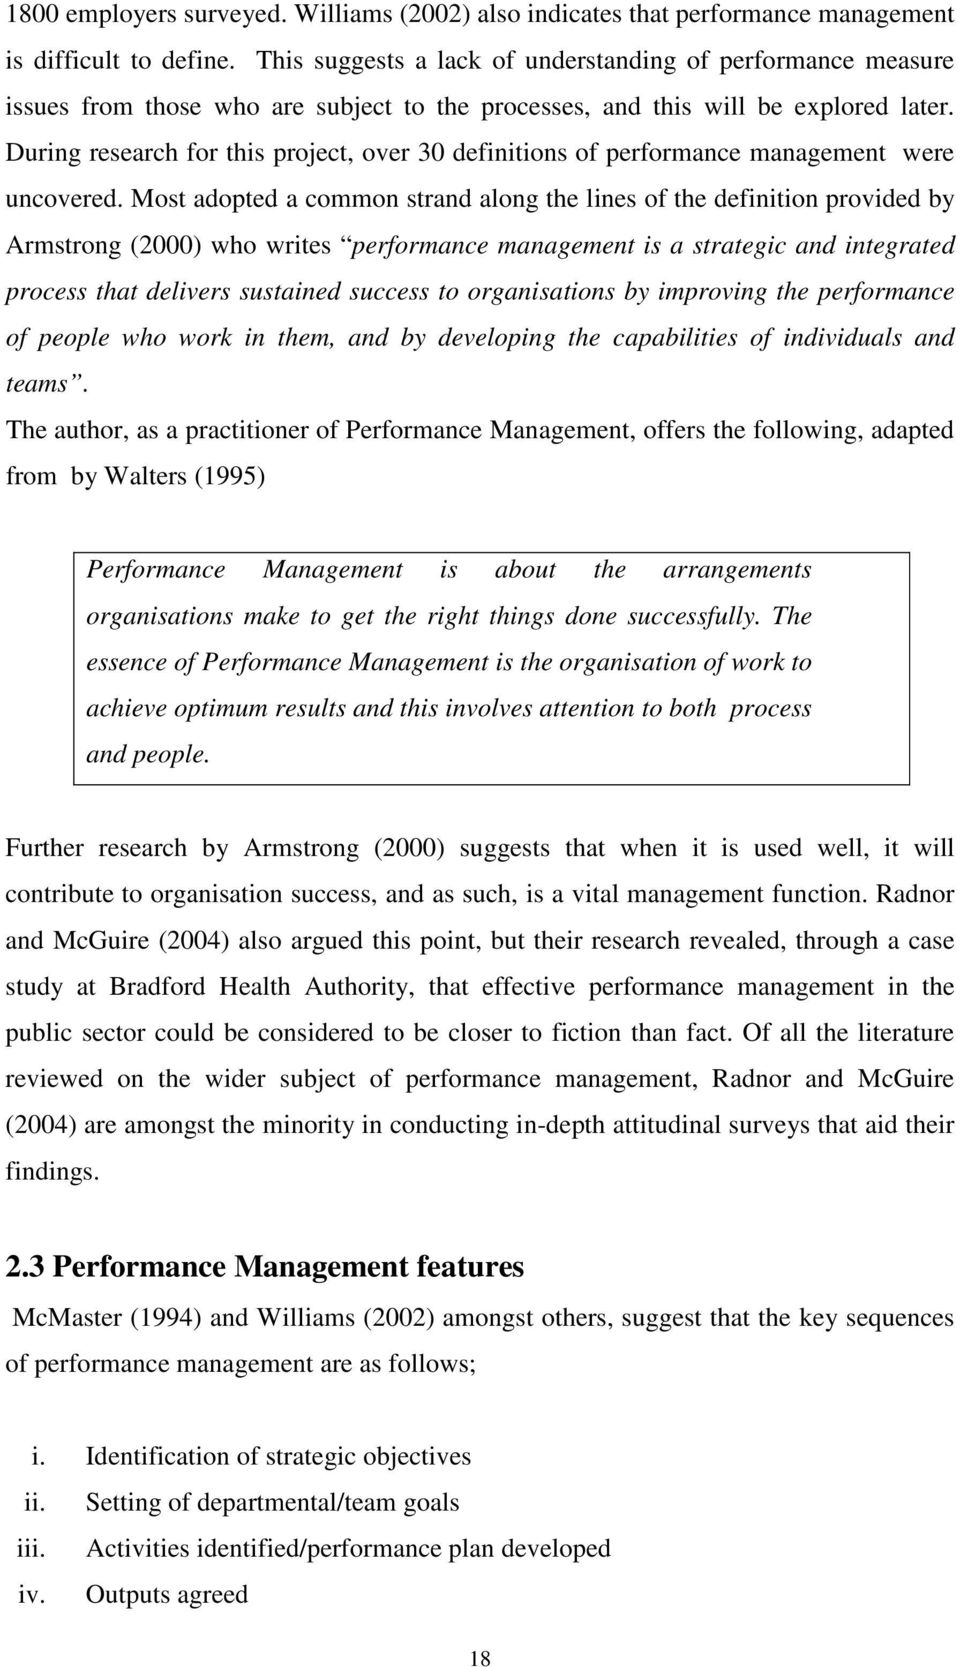 During research for this project, over 30 definitions of performance management were uncovered.